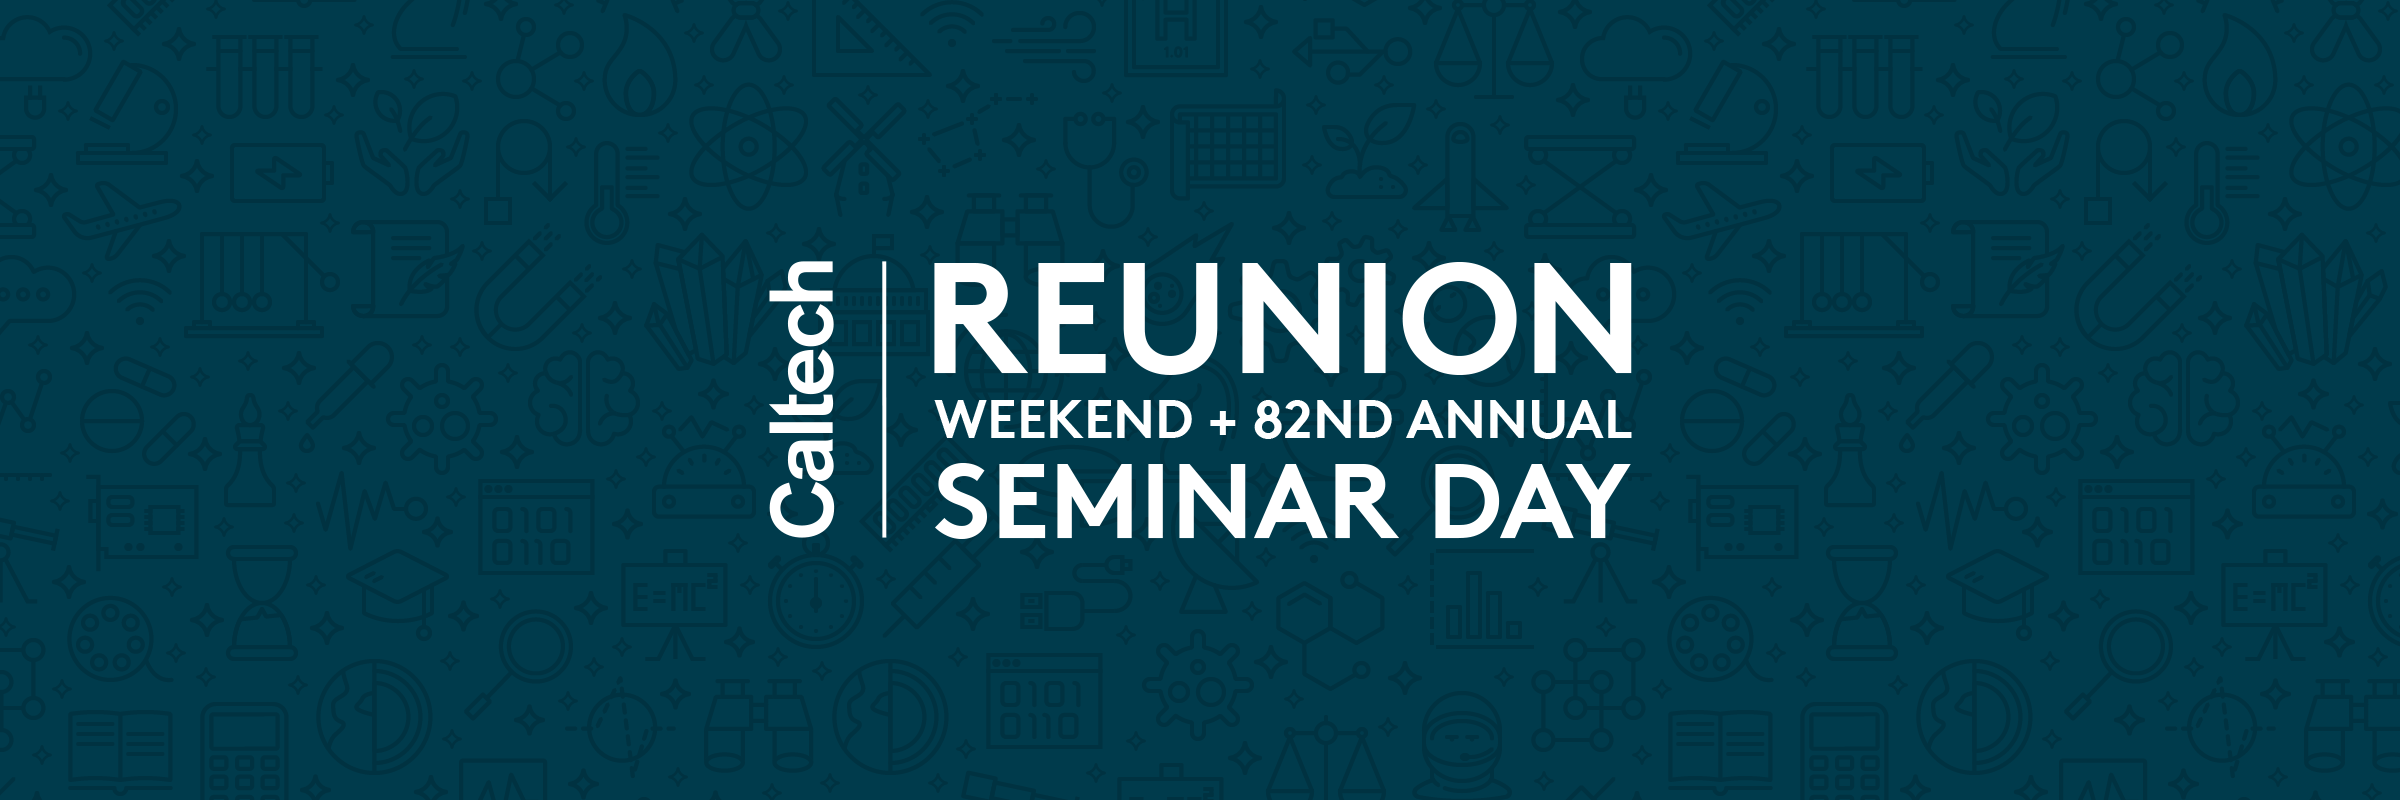 reunion2019_banner_combined.png